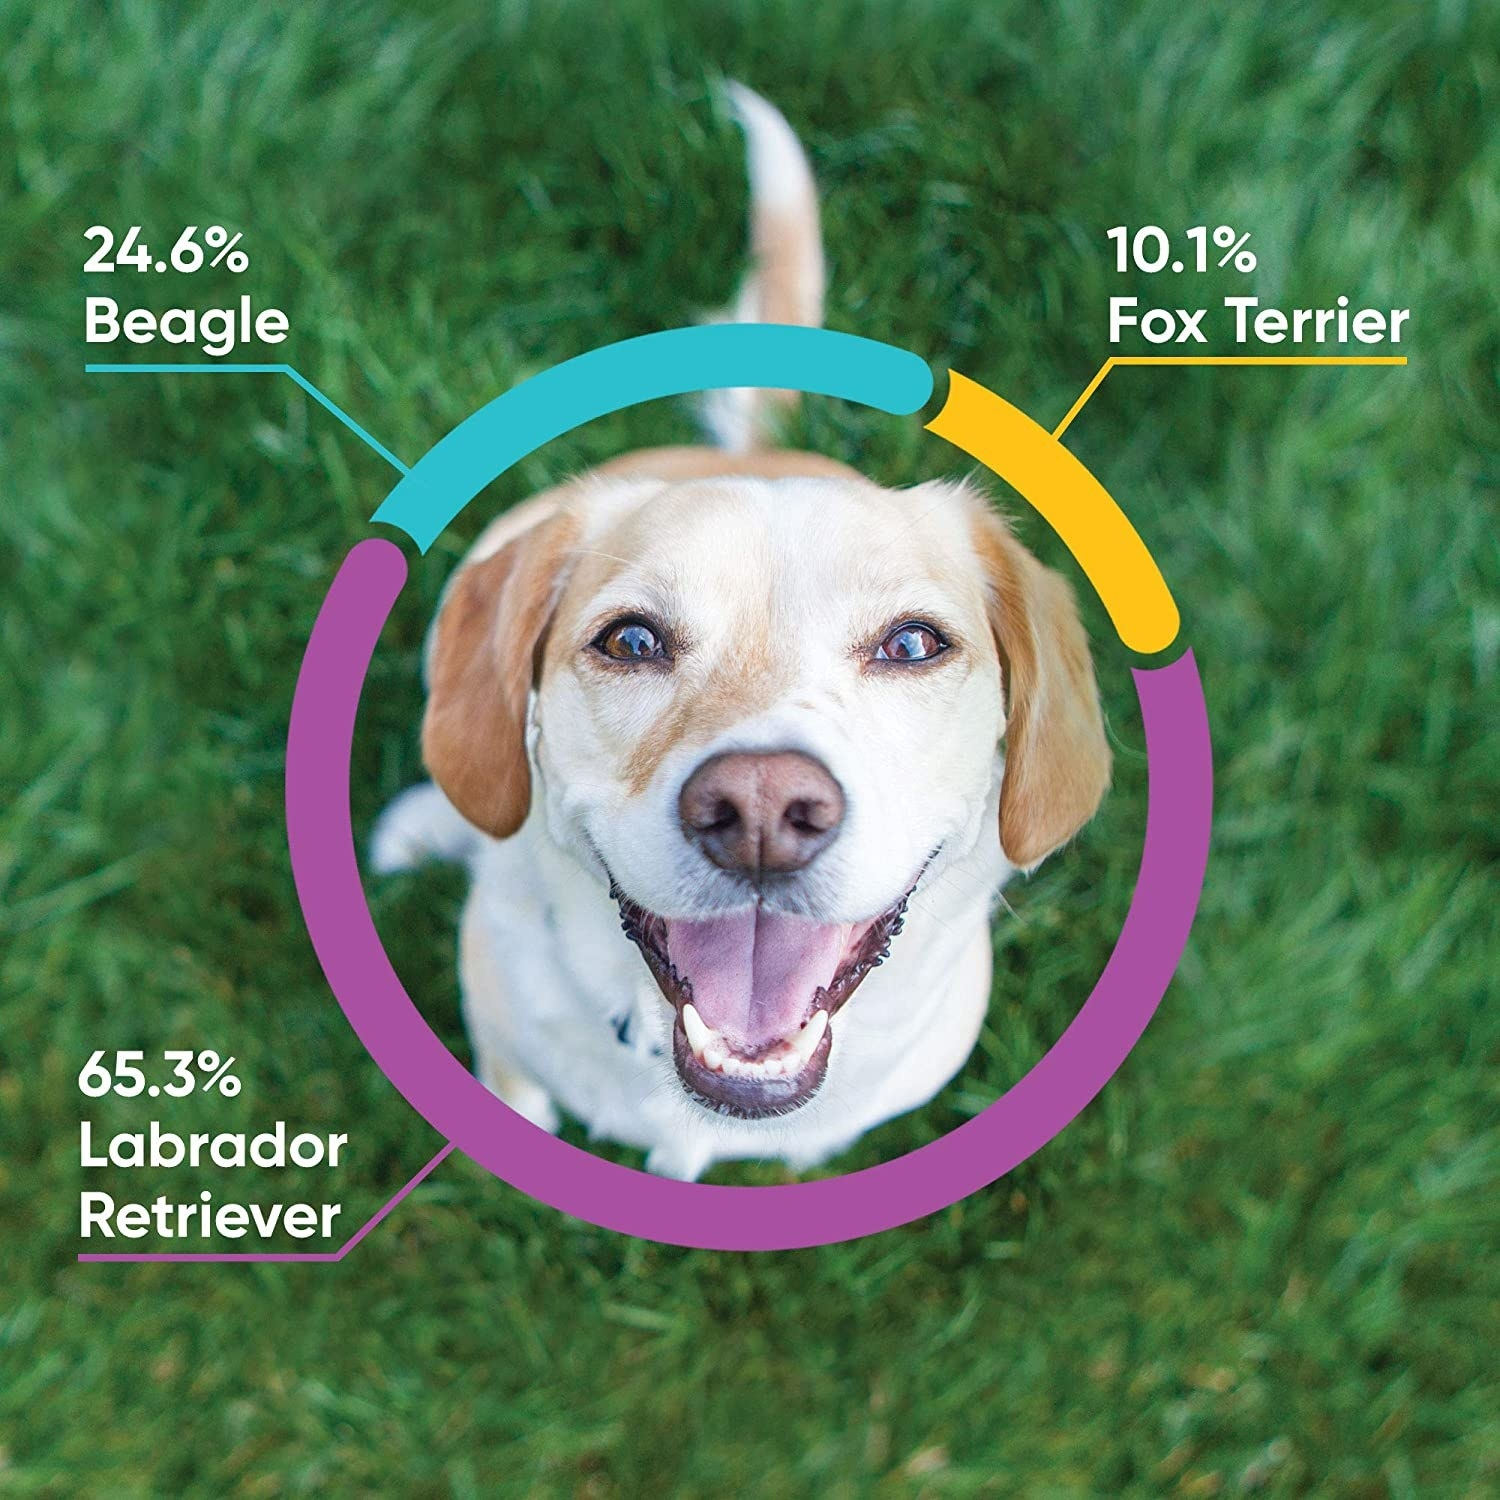 Diagram showing breakdown of dog's genetic makeup